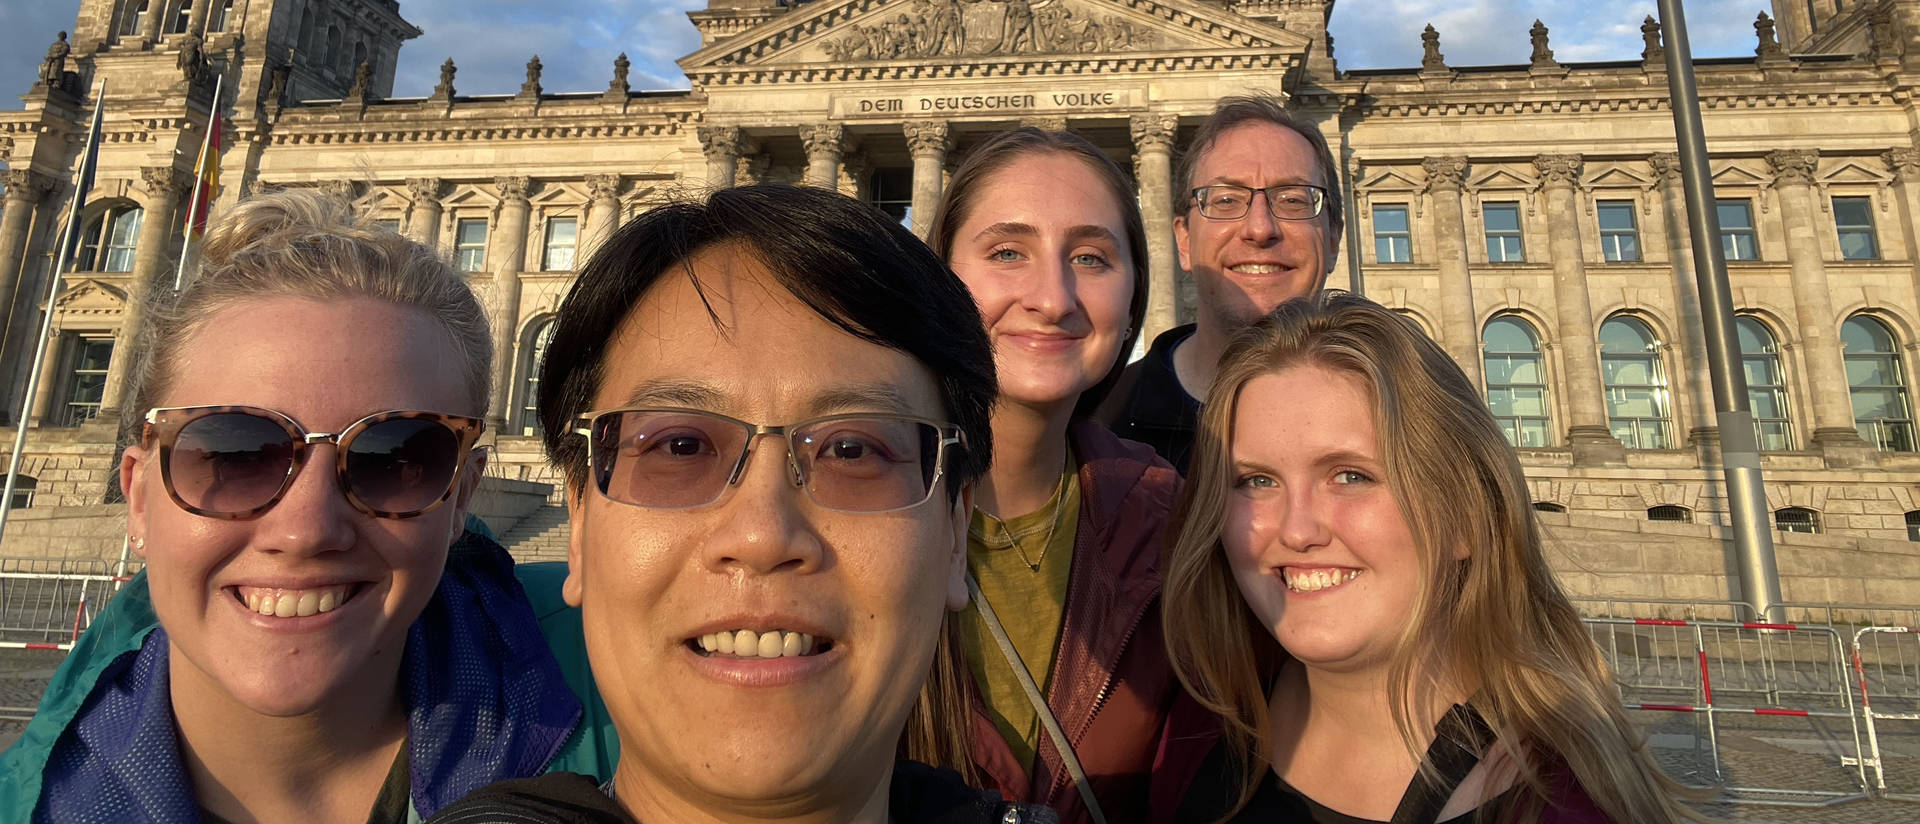 Alyssa Hanson, Dr. Chia-Yu Hsu, Bekah Henn, Dr. Jeff DeGrave and Samantha Maurer (from left) explored Berlin — including the Reichstag Building, which houses the Bundestag, the lower house of Germany's parliament — during a summer immersion program.